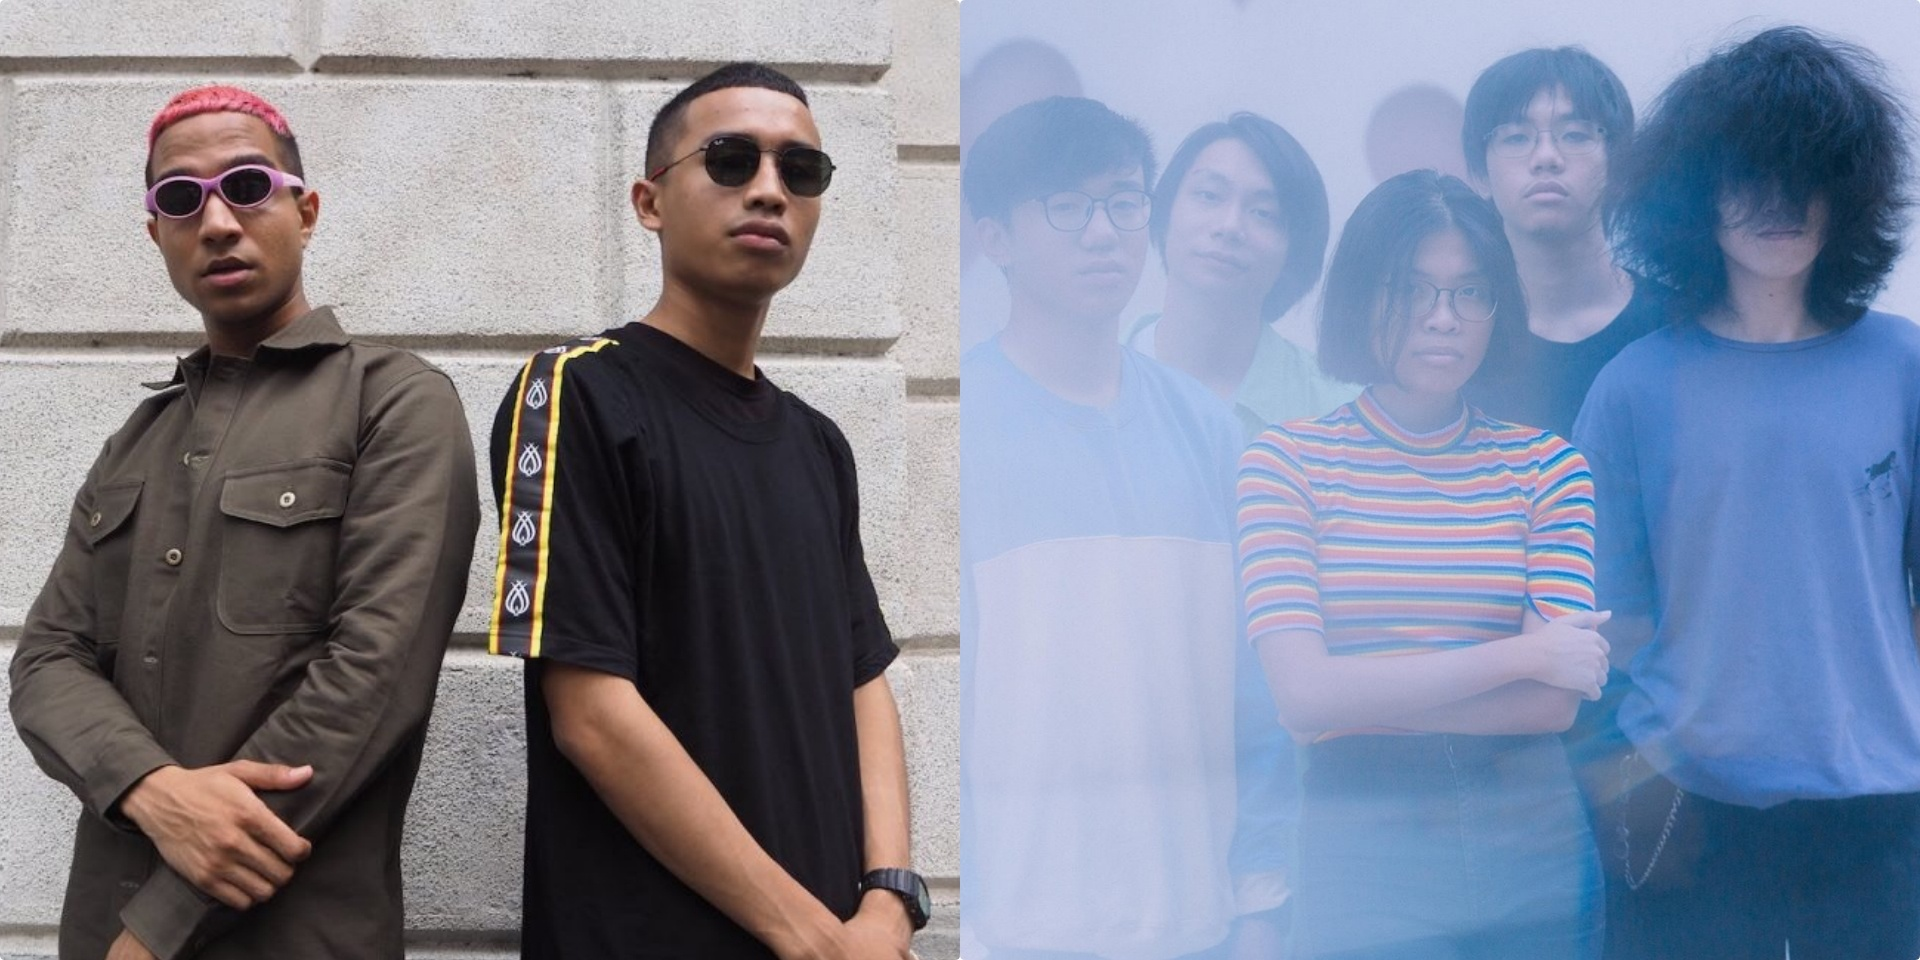 Yung Raja, Fariz Jabba, Subsonic Eye and more to perform at STREAM @ Clarke Quay 2019